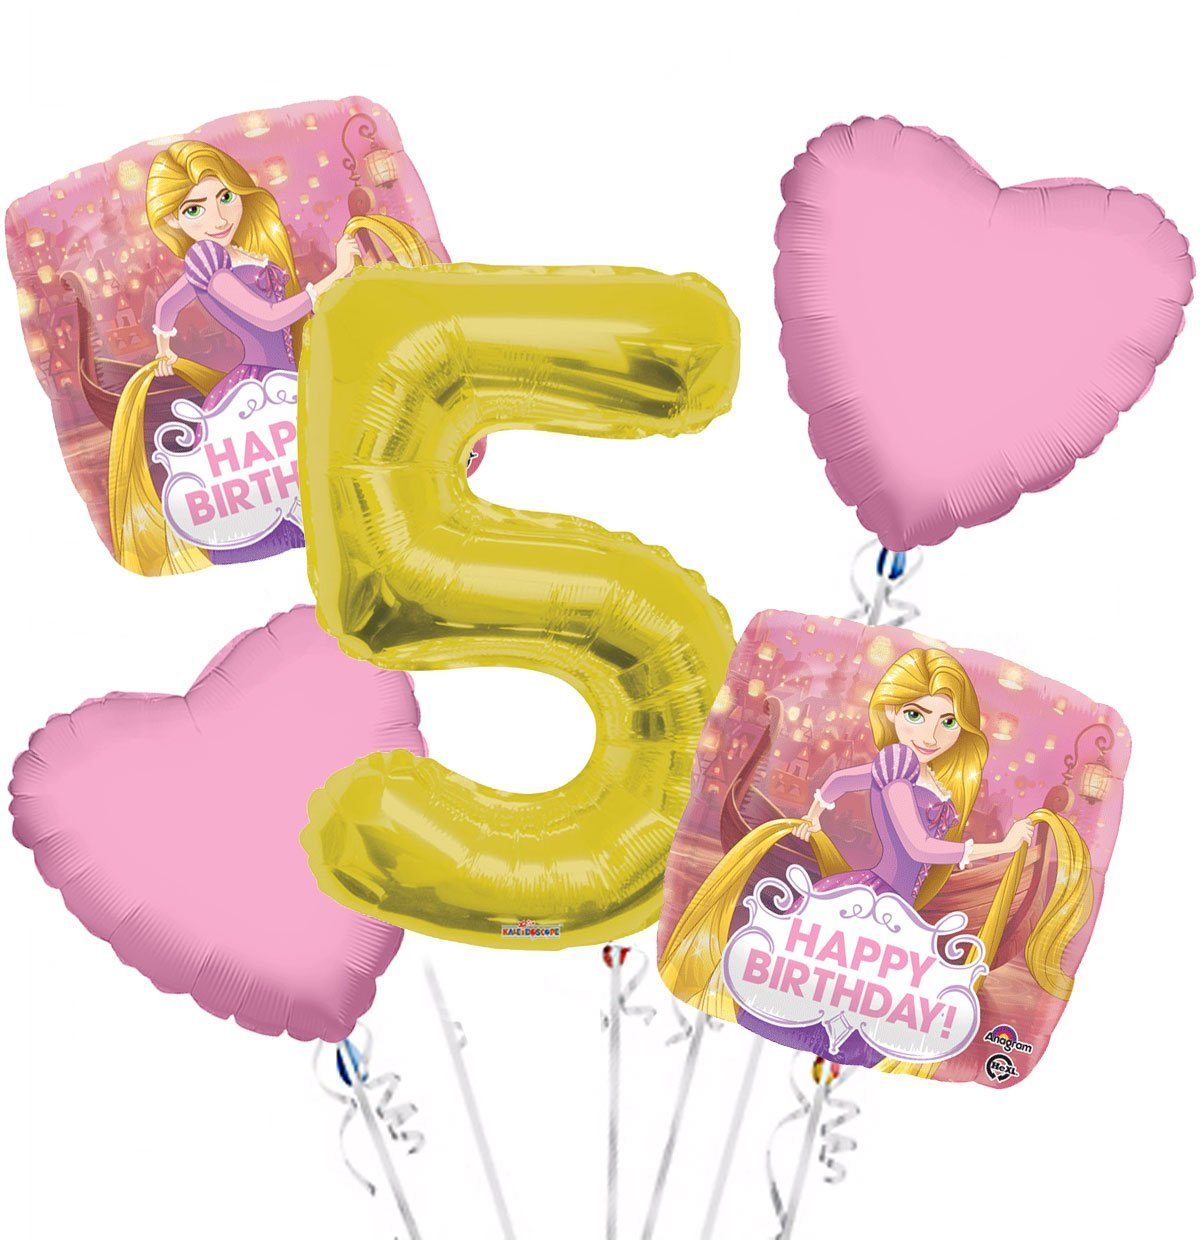 Rapunzel Balloon Bouquet 5th Birthday 5 pcs - Party Supplies Gold, 1 Giant Number 5 Balloon, 34in By Viva Party